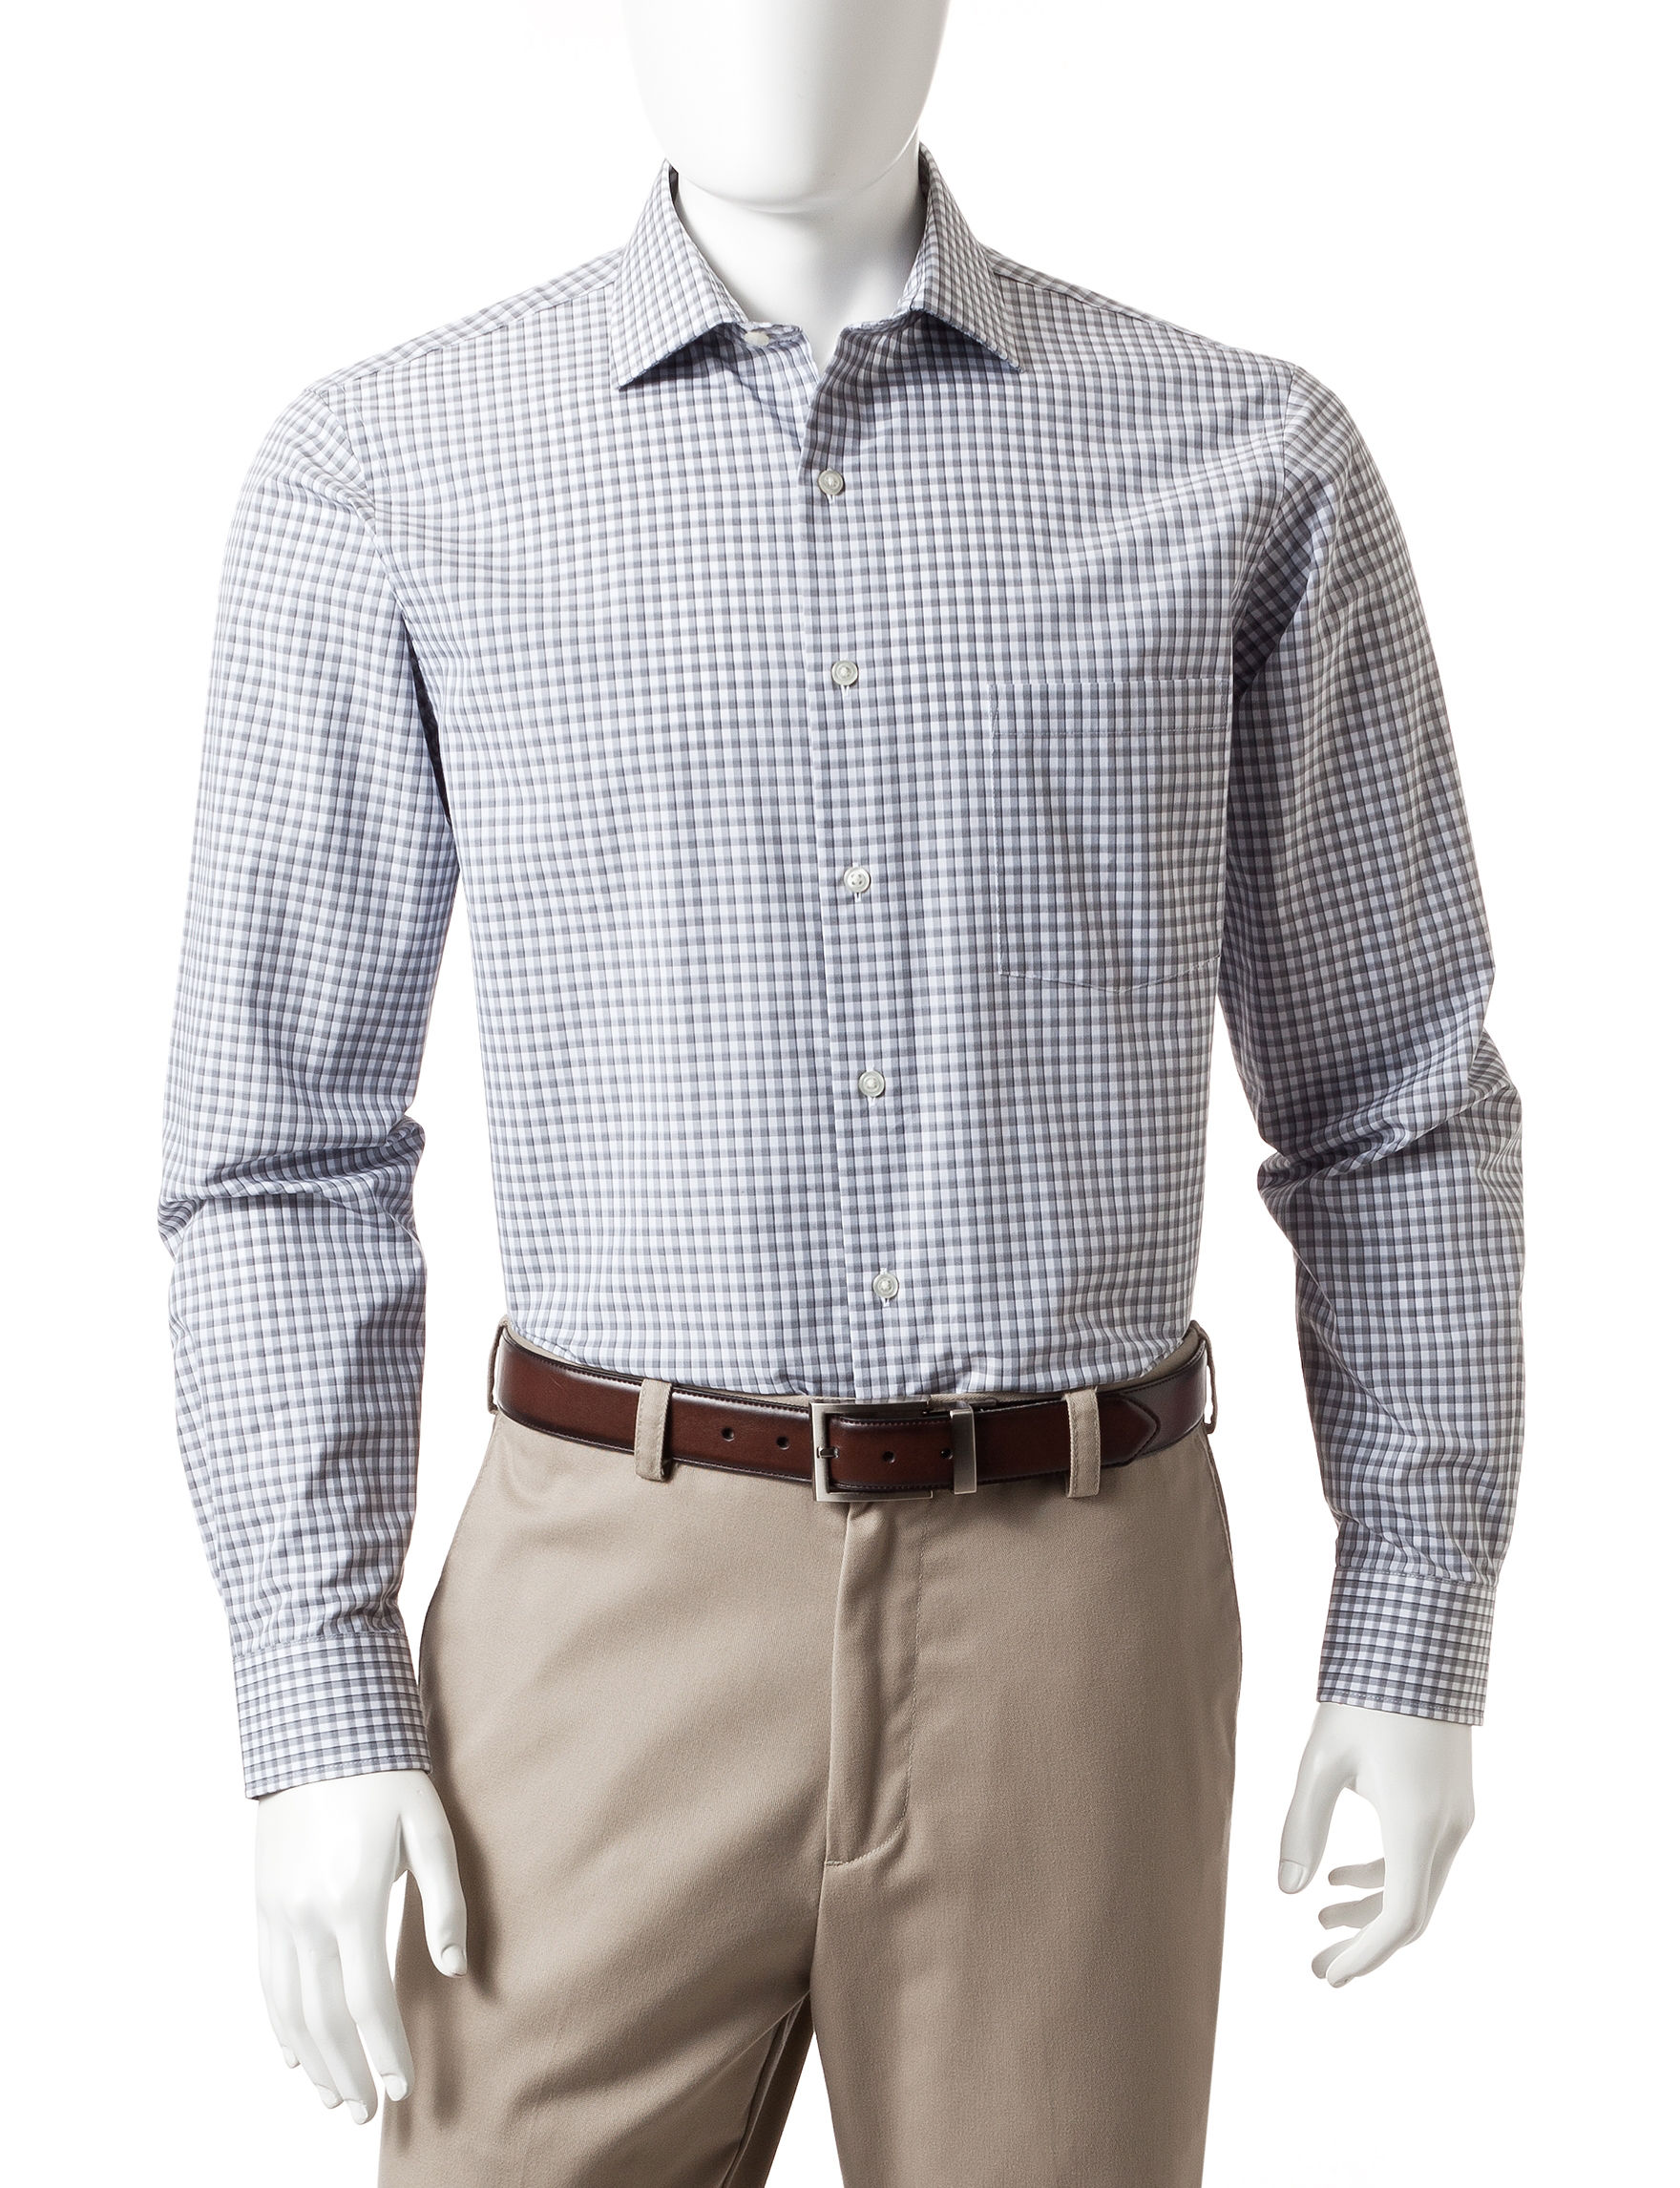 Van Heusen Grey Dress Shirts